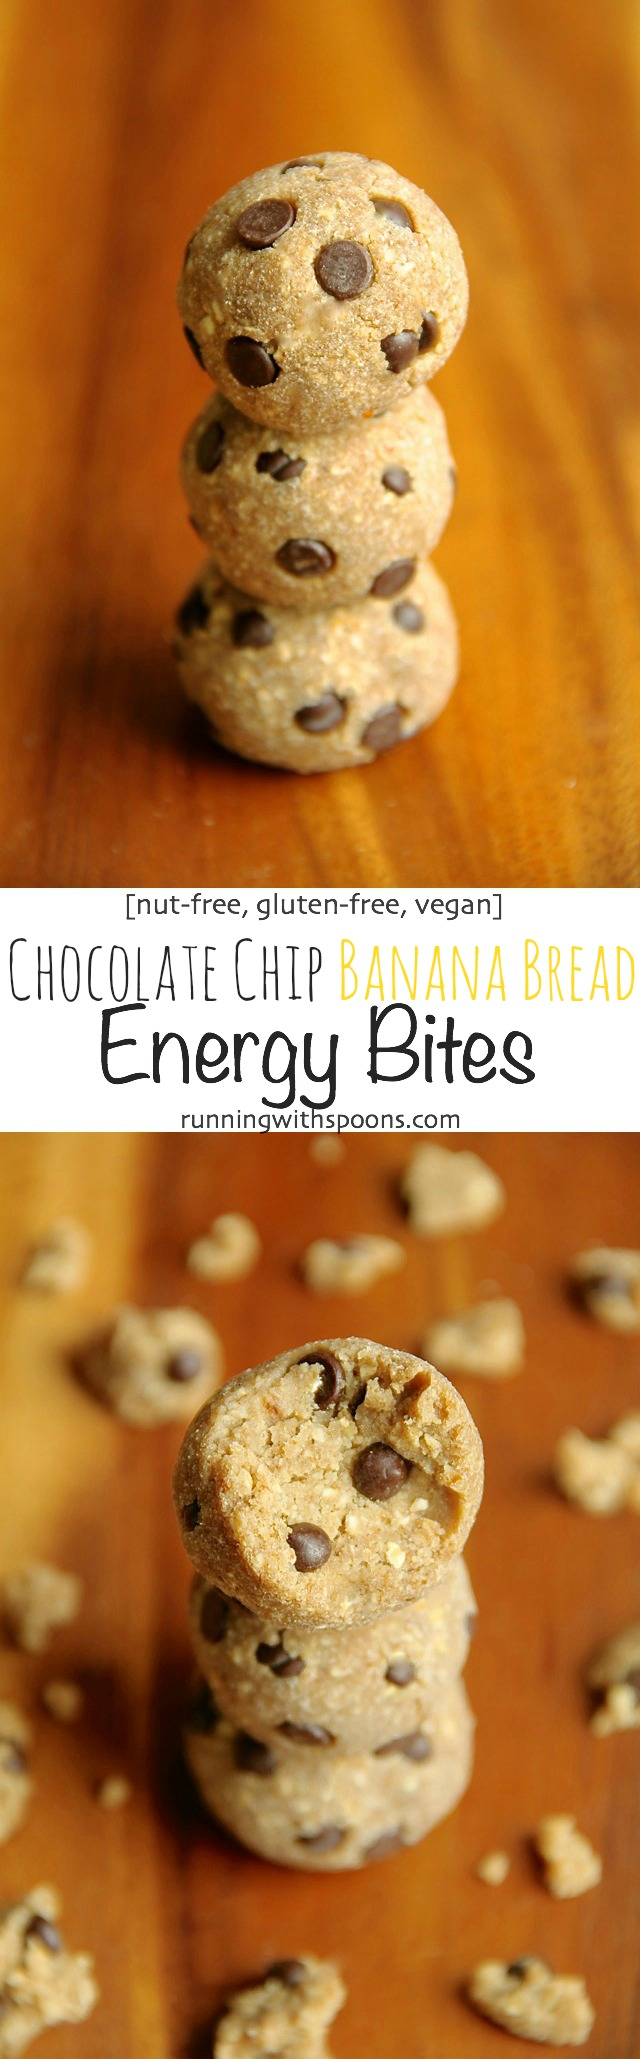 These 5-ingredient, no-bake Chocolate Chip Banana Bread Energy Bites are nut-free, gluten-free, vegan, and taste just like poppable bites of banana bread! || runningwithspoons.com #glutenfree #vegan